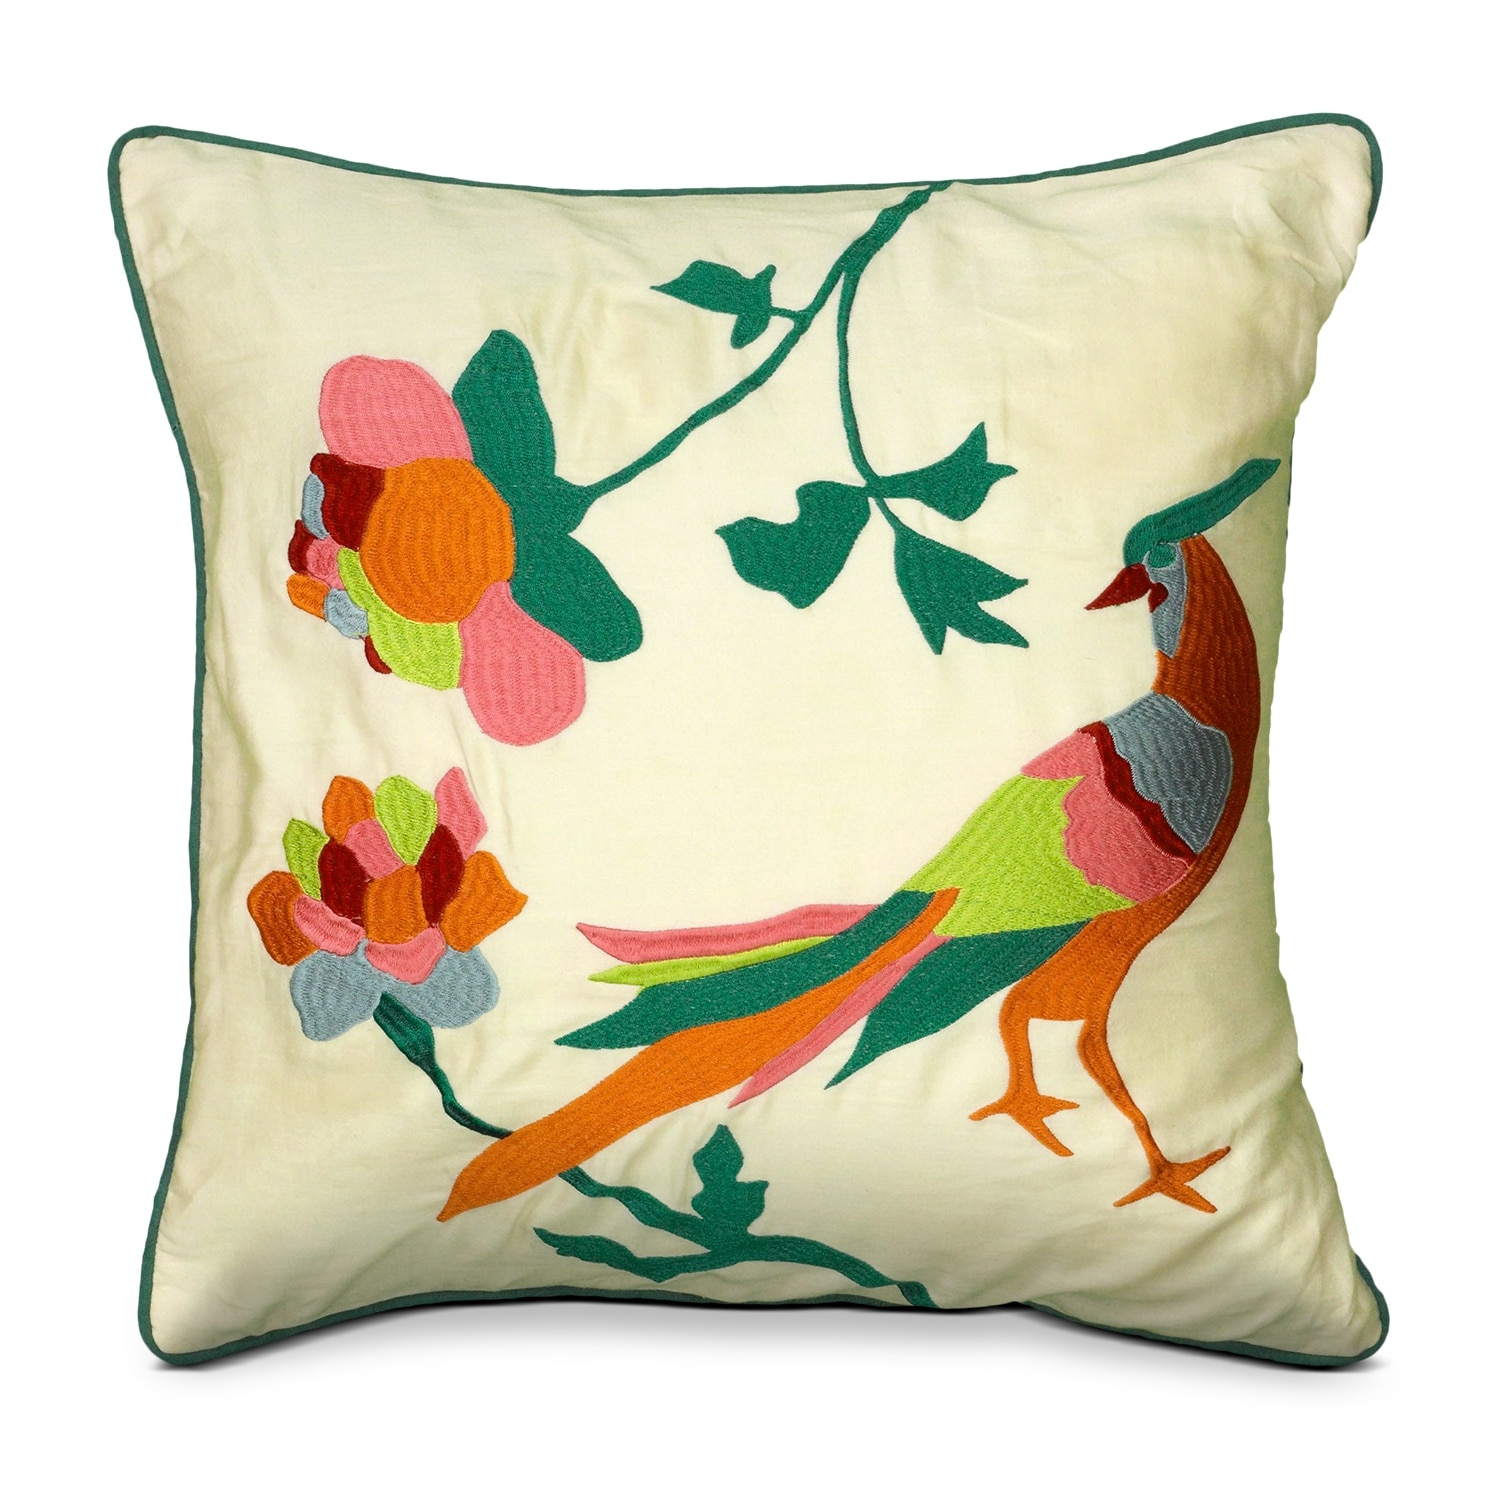 Linda Decorative Pillow